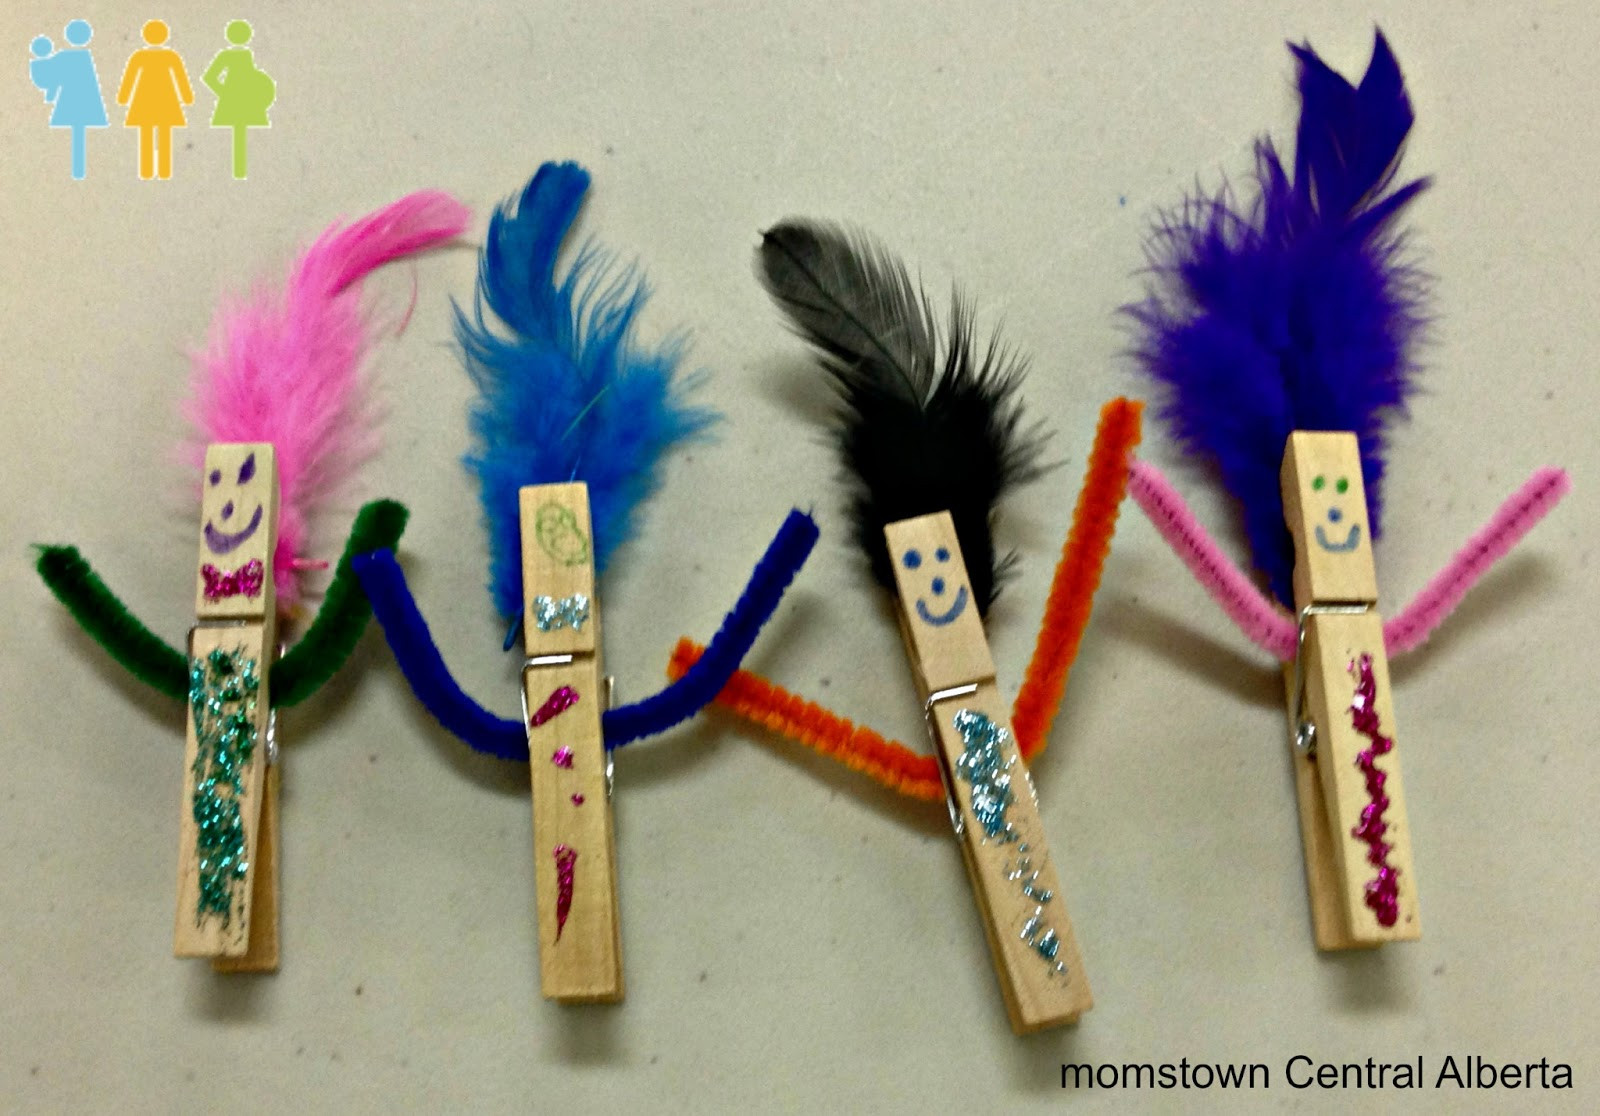 Best ideas about Preschool Arts And Craft . Save or Pin Art and Play Silly Crafts for Preschoolers Now.